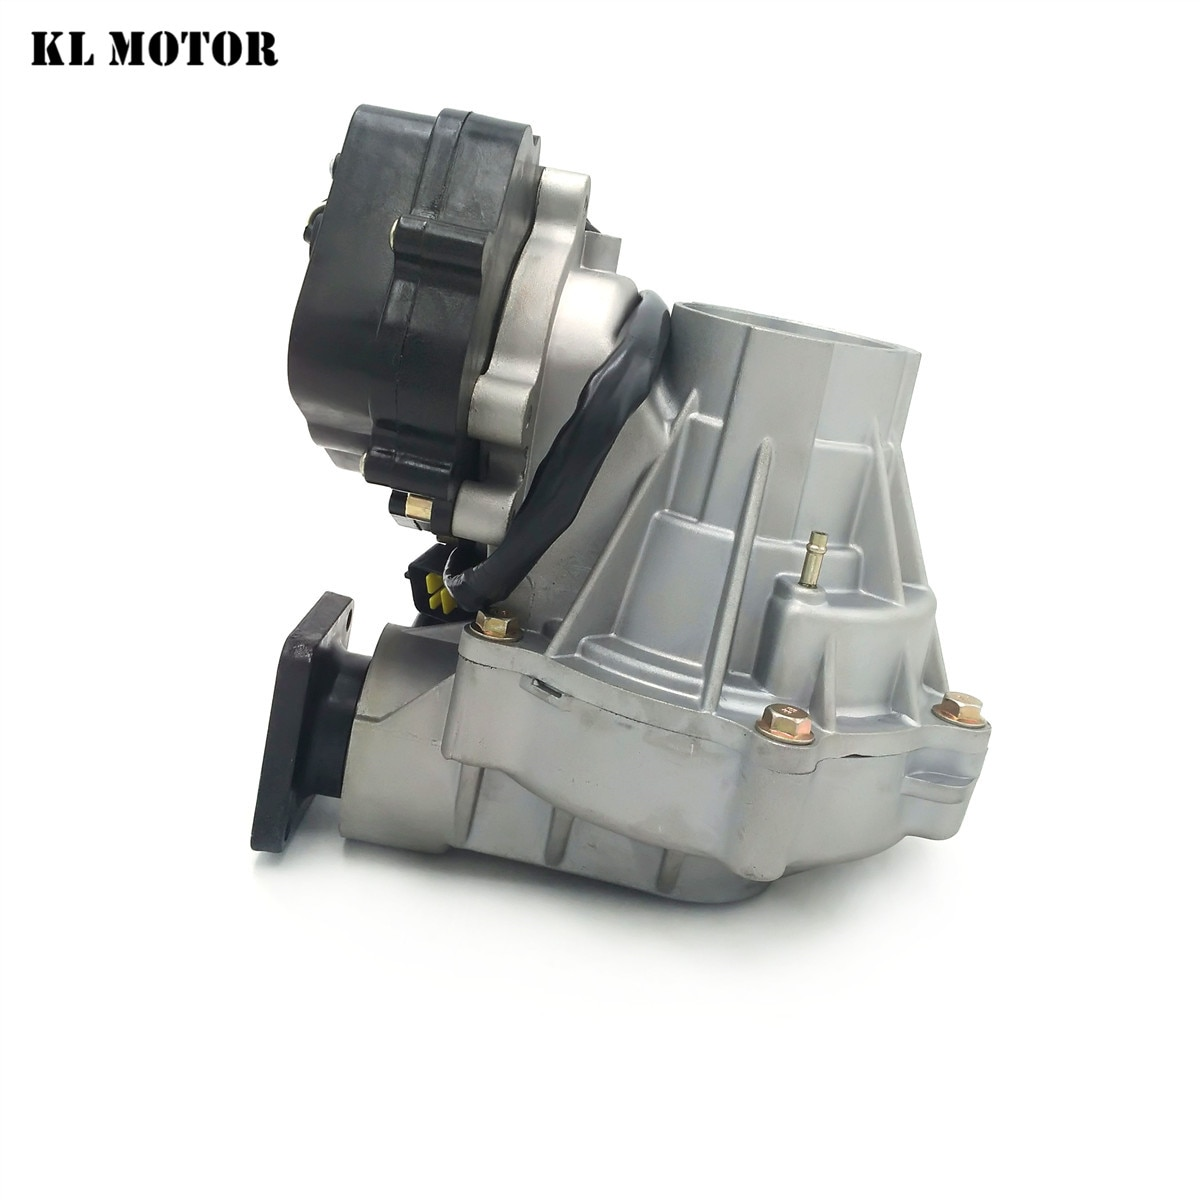 Front axle Front Transmission Box Gearbox Differential Diff Axle 500 600 X5 X6 0181-310000 go kart QUAD ATV UTV Parts enlarge